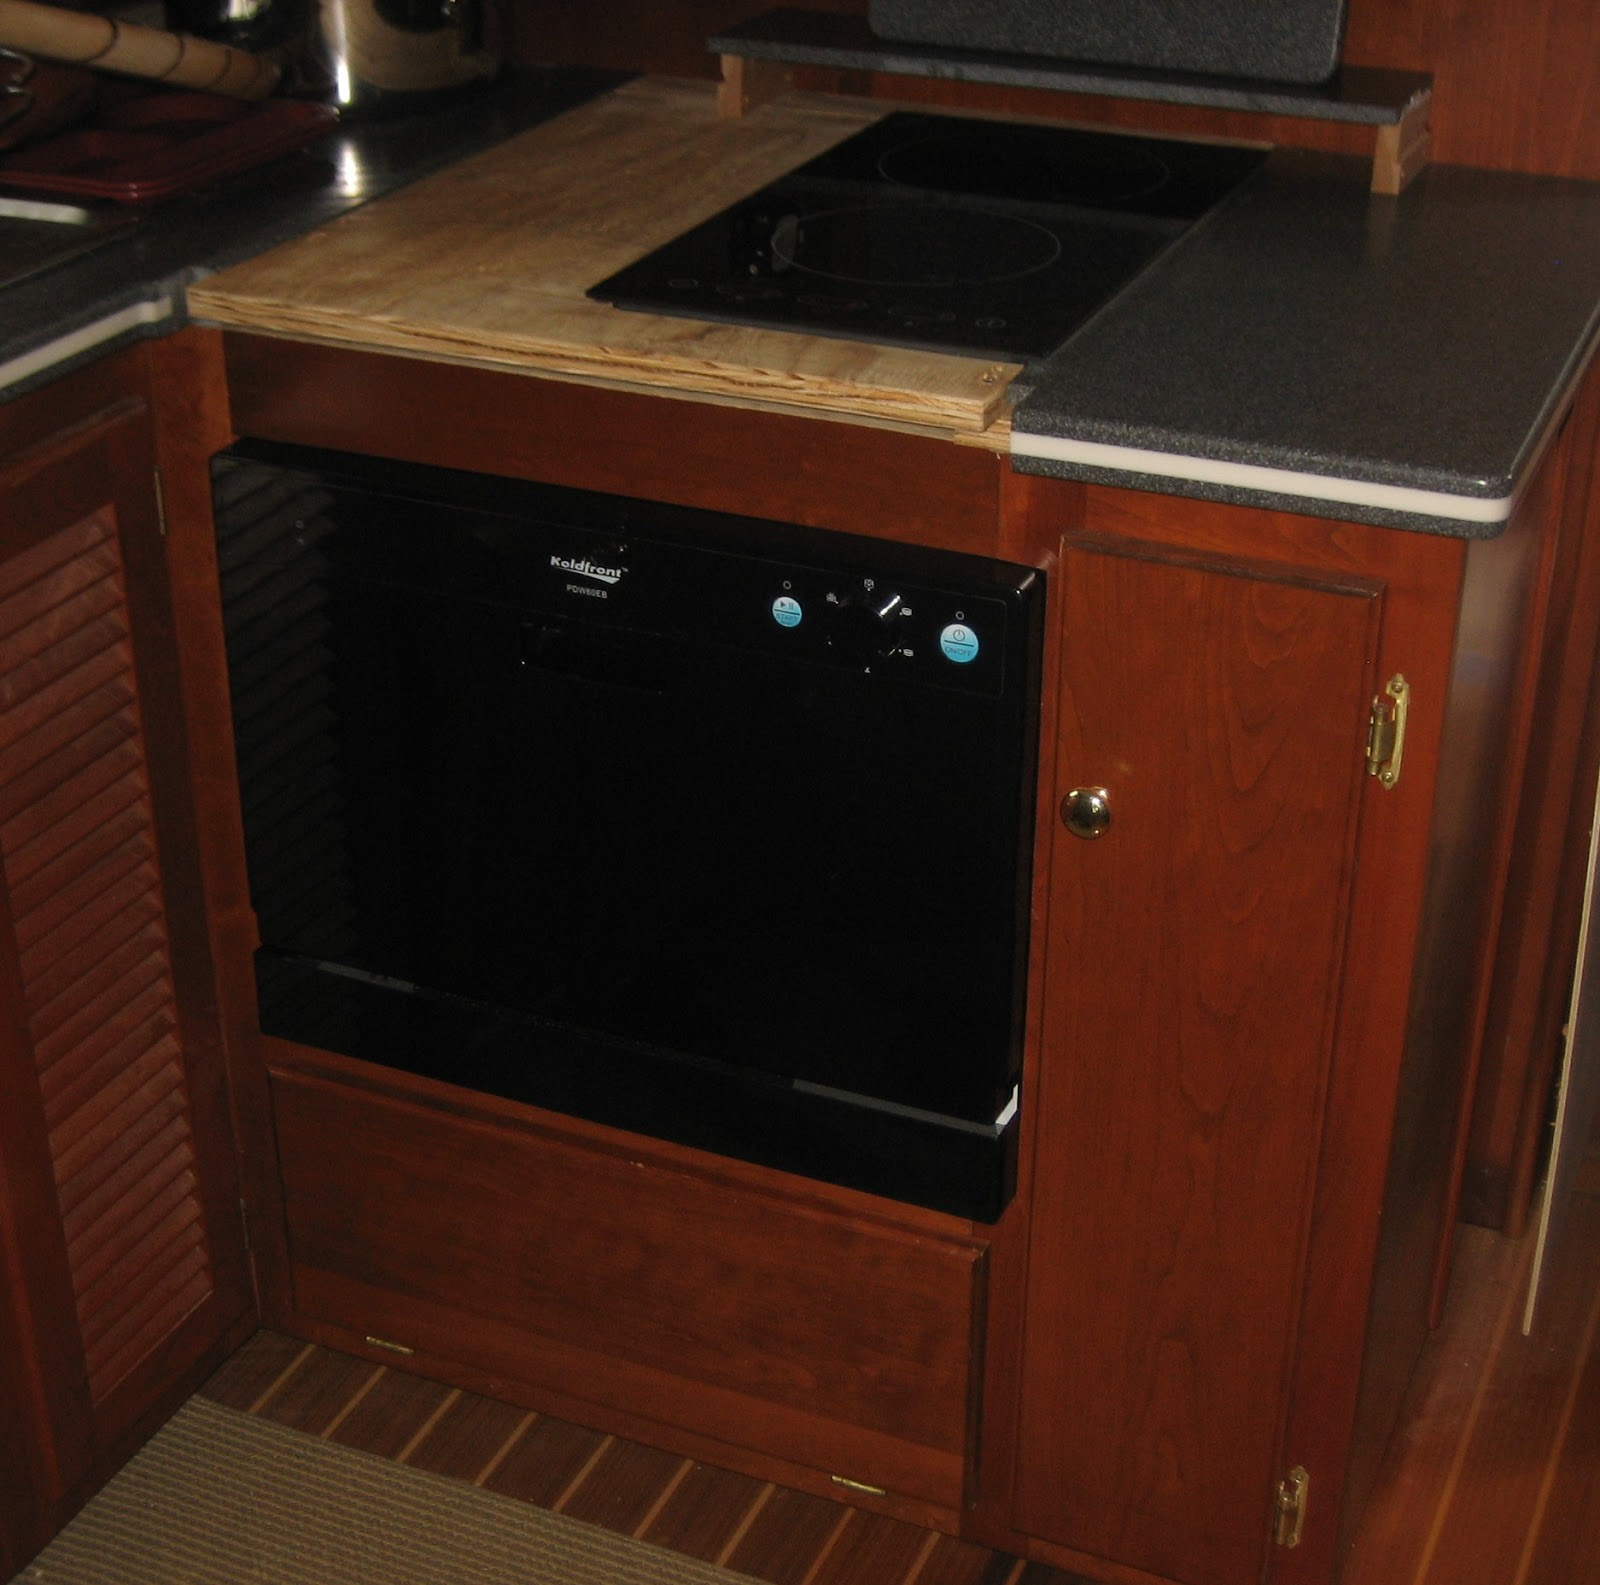 Countertop Dishwasher Plumbing : It looks a lot bigger on the countertop, as designed.